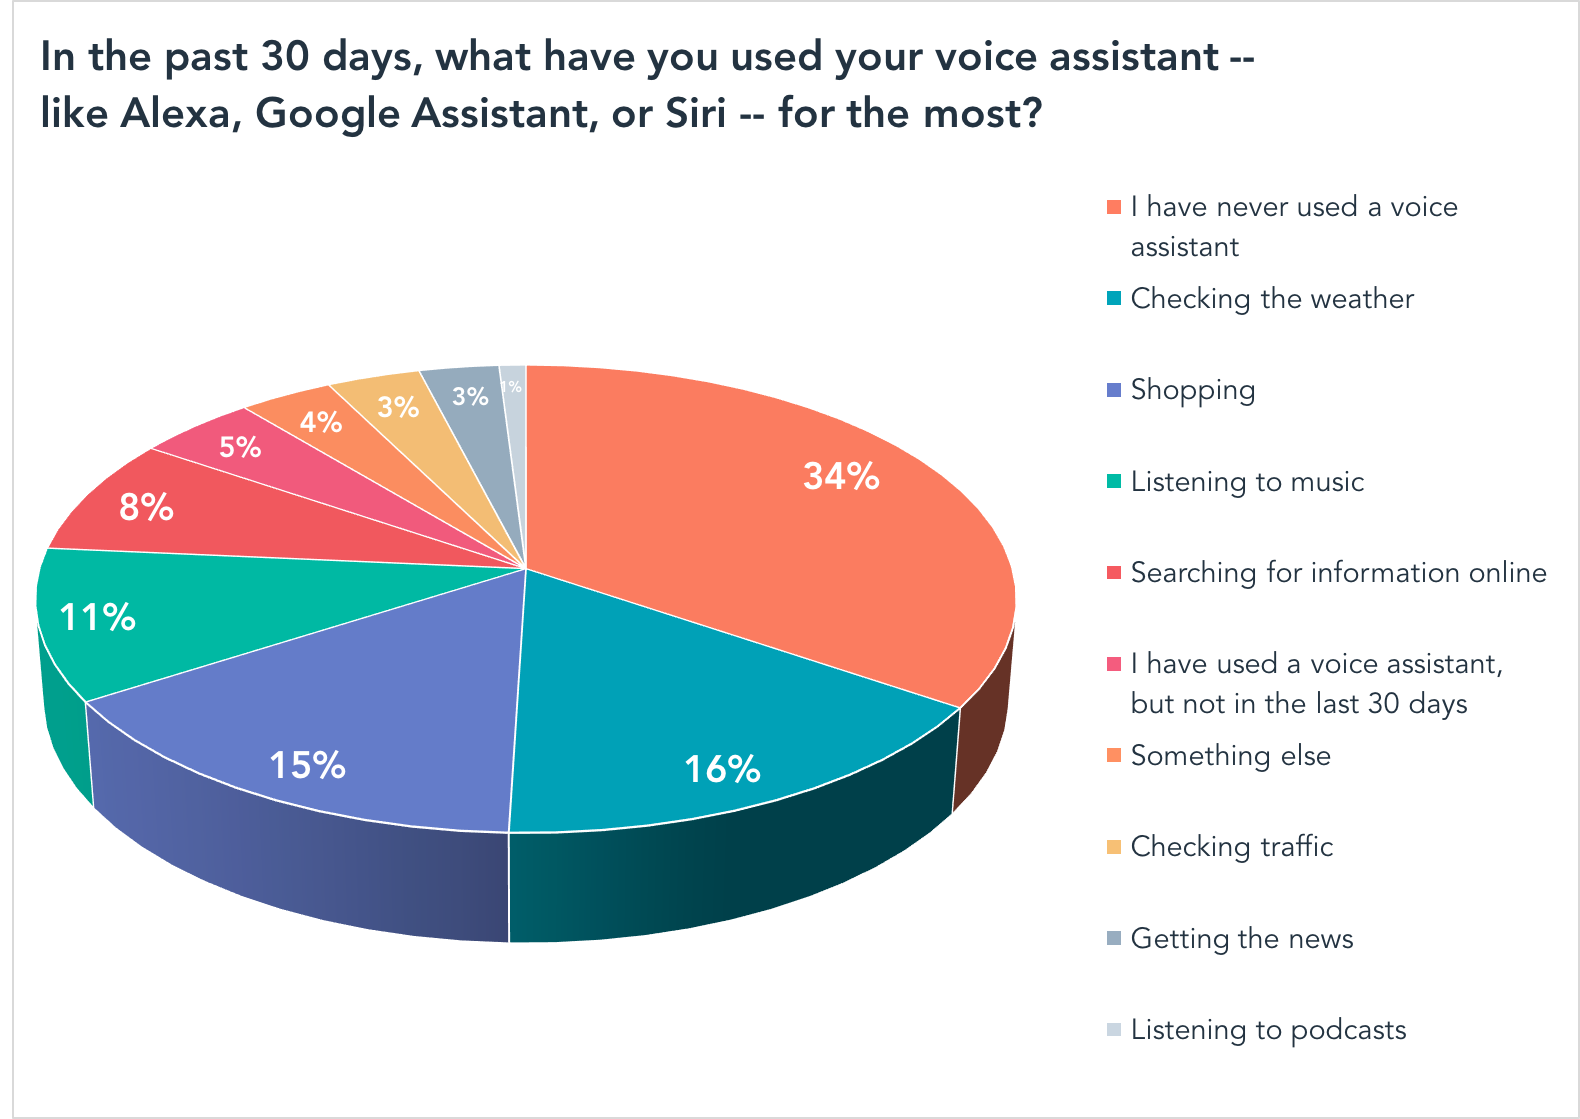 In the past 30 days, what have you used your voice assistant -- like Alexa, Google Assistant, or Siri -- for the most?